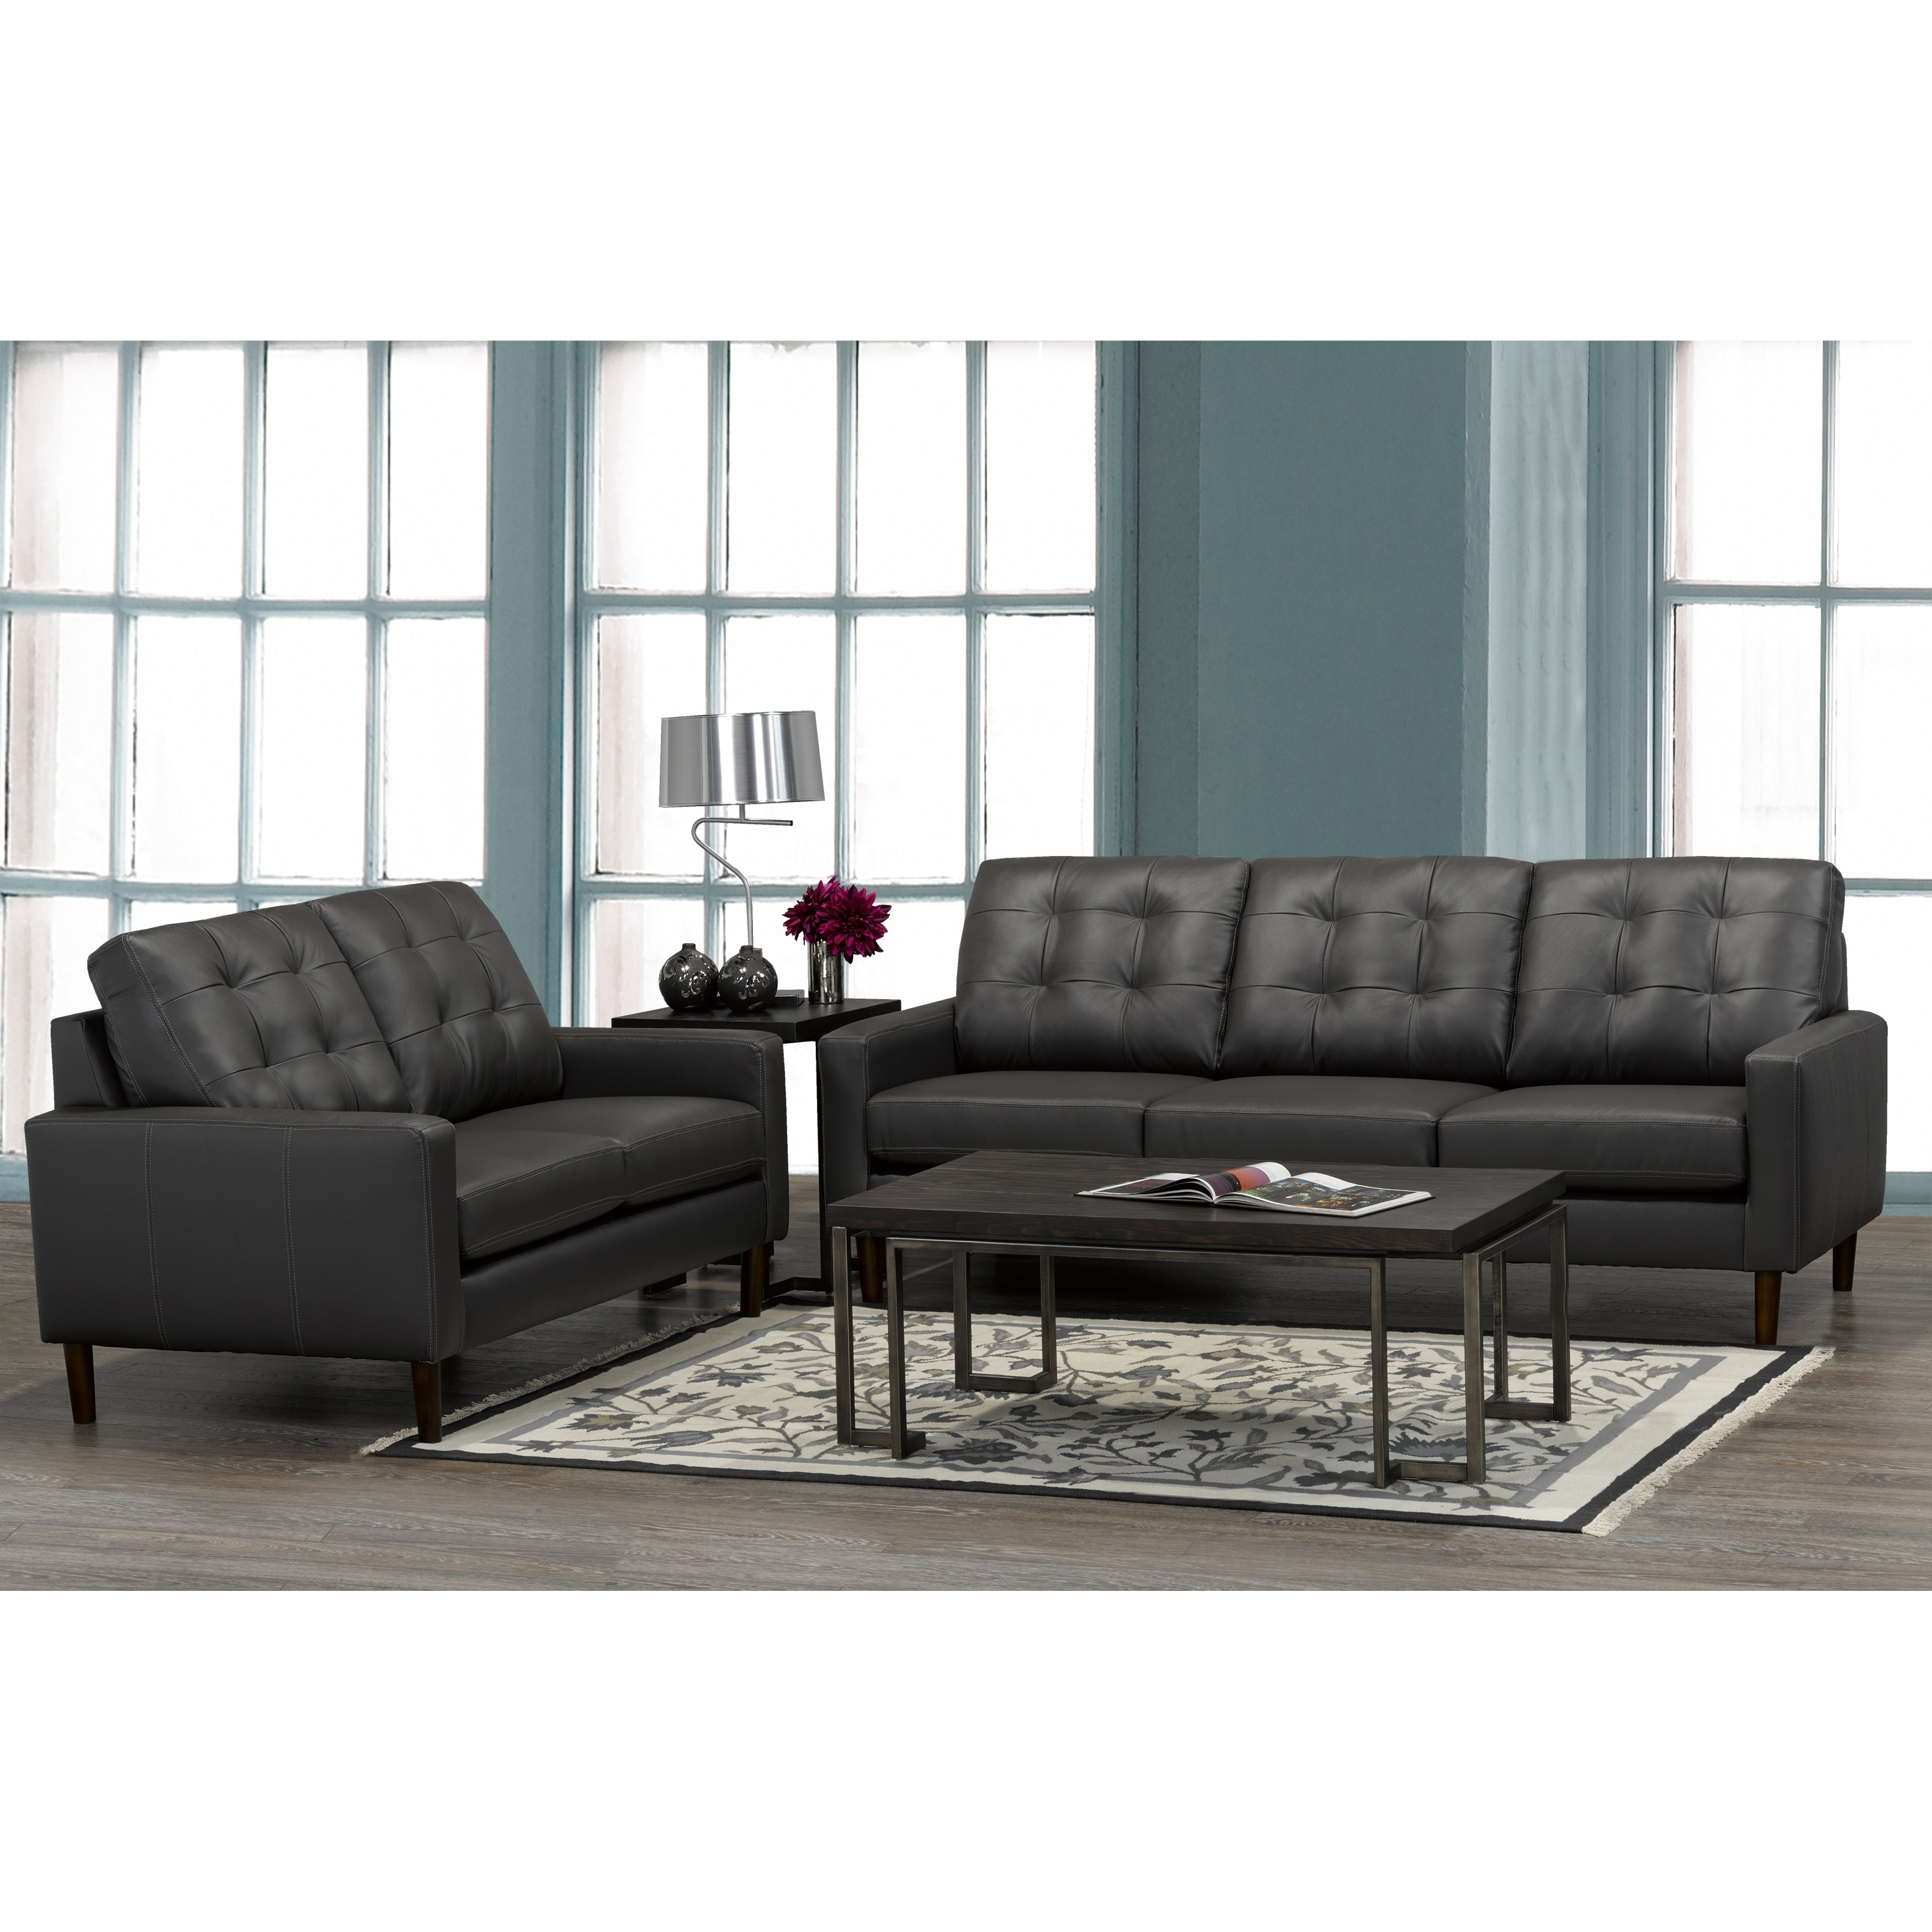 Gunner Mid Century Modern Dark Grey Top Grain Italian Leather Tufted Sofa And Loveseat On Free Shipping Today 20847561